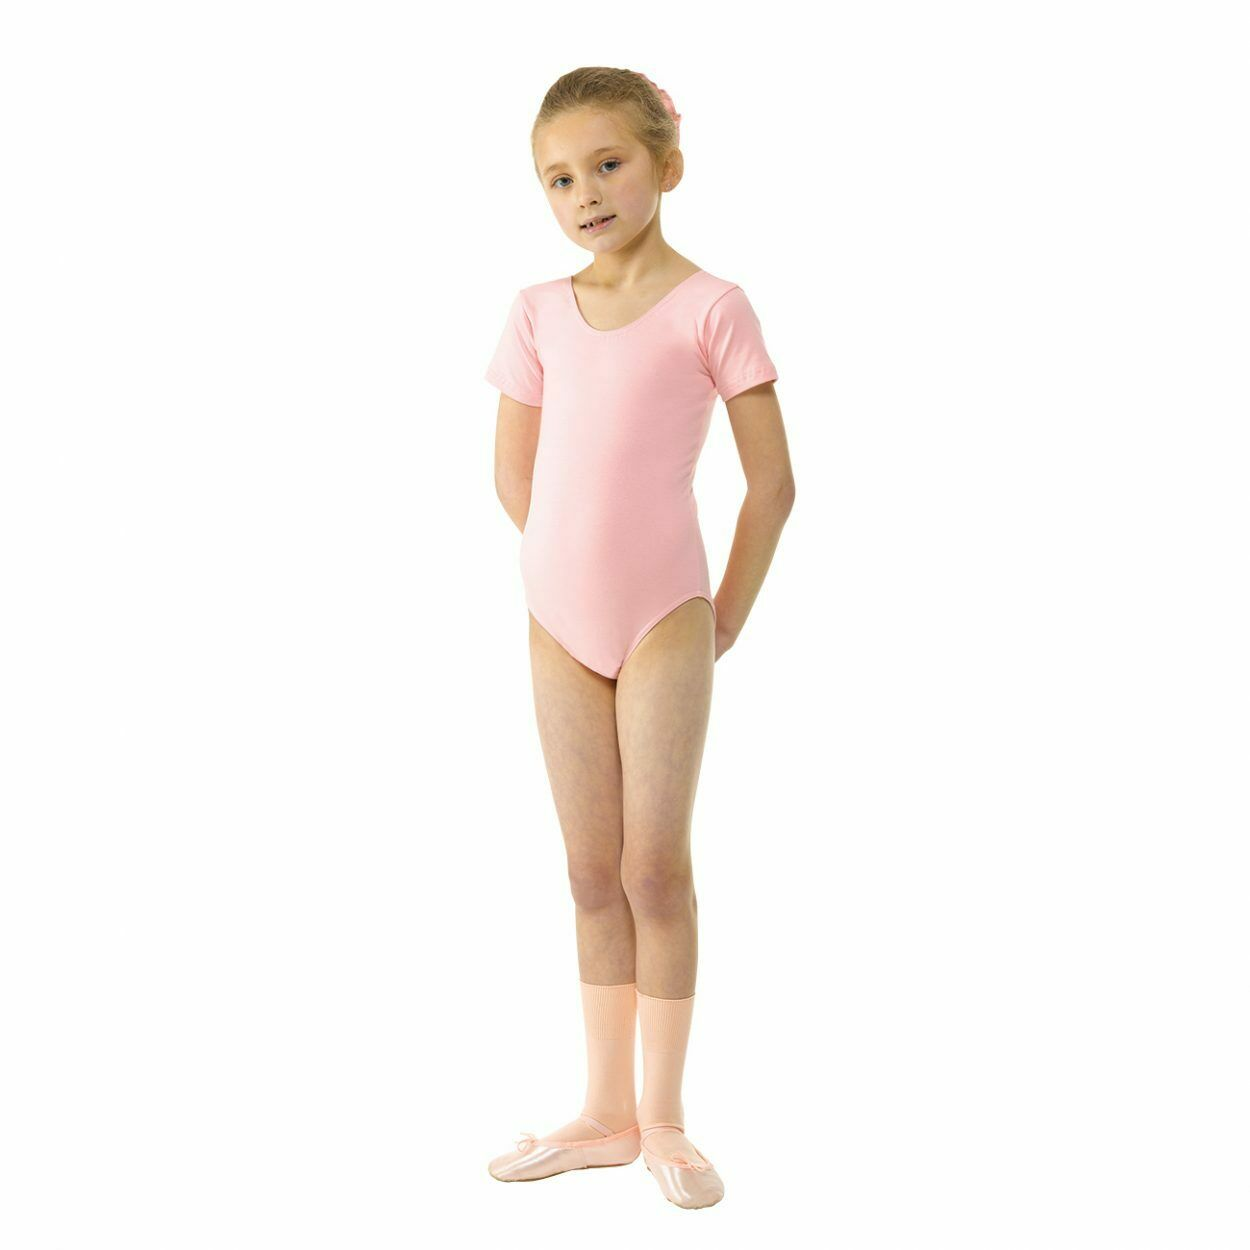 Tappers and Pointers Dance Short Sleeved Ballet Leotard Cotton Lycra Pale Pink